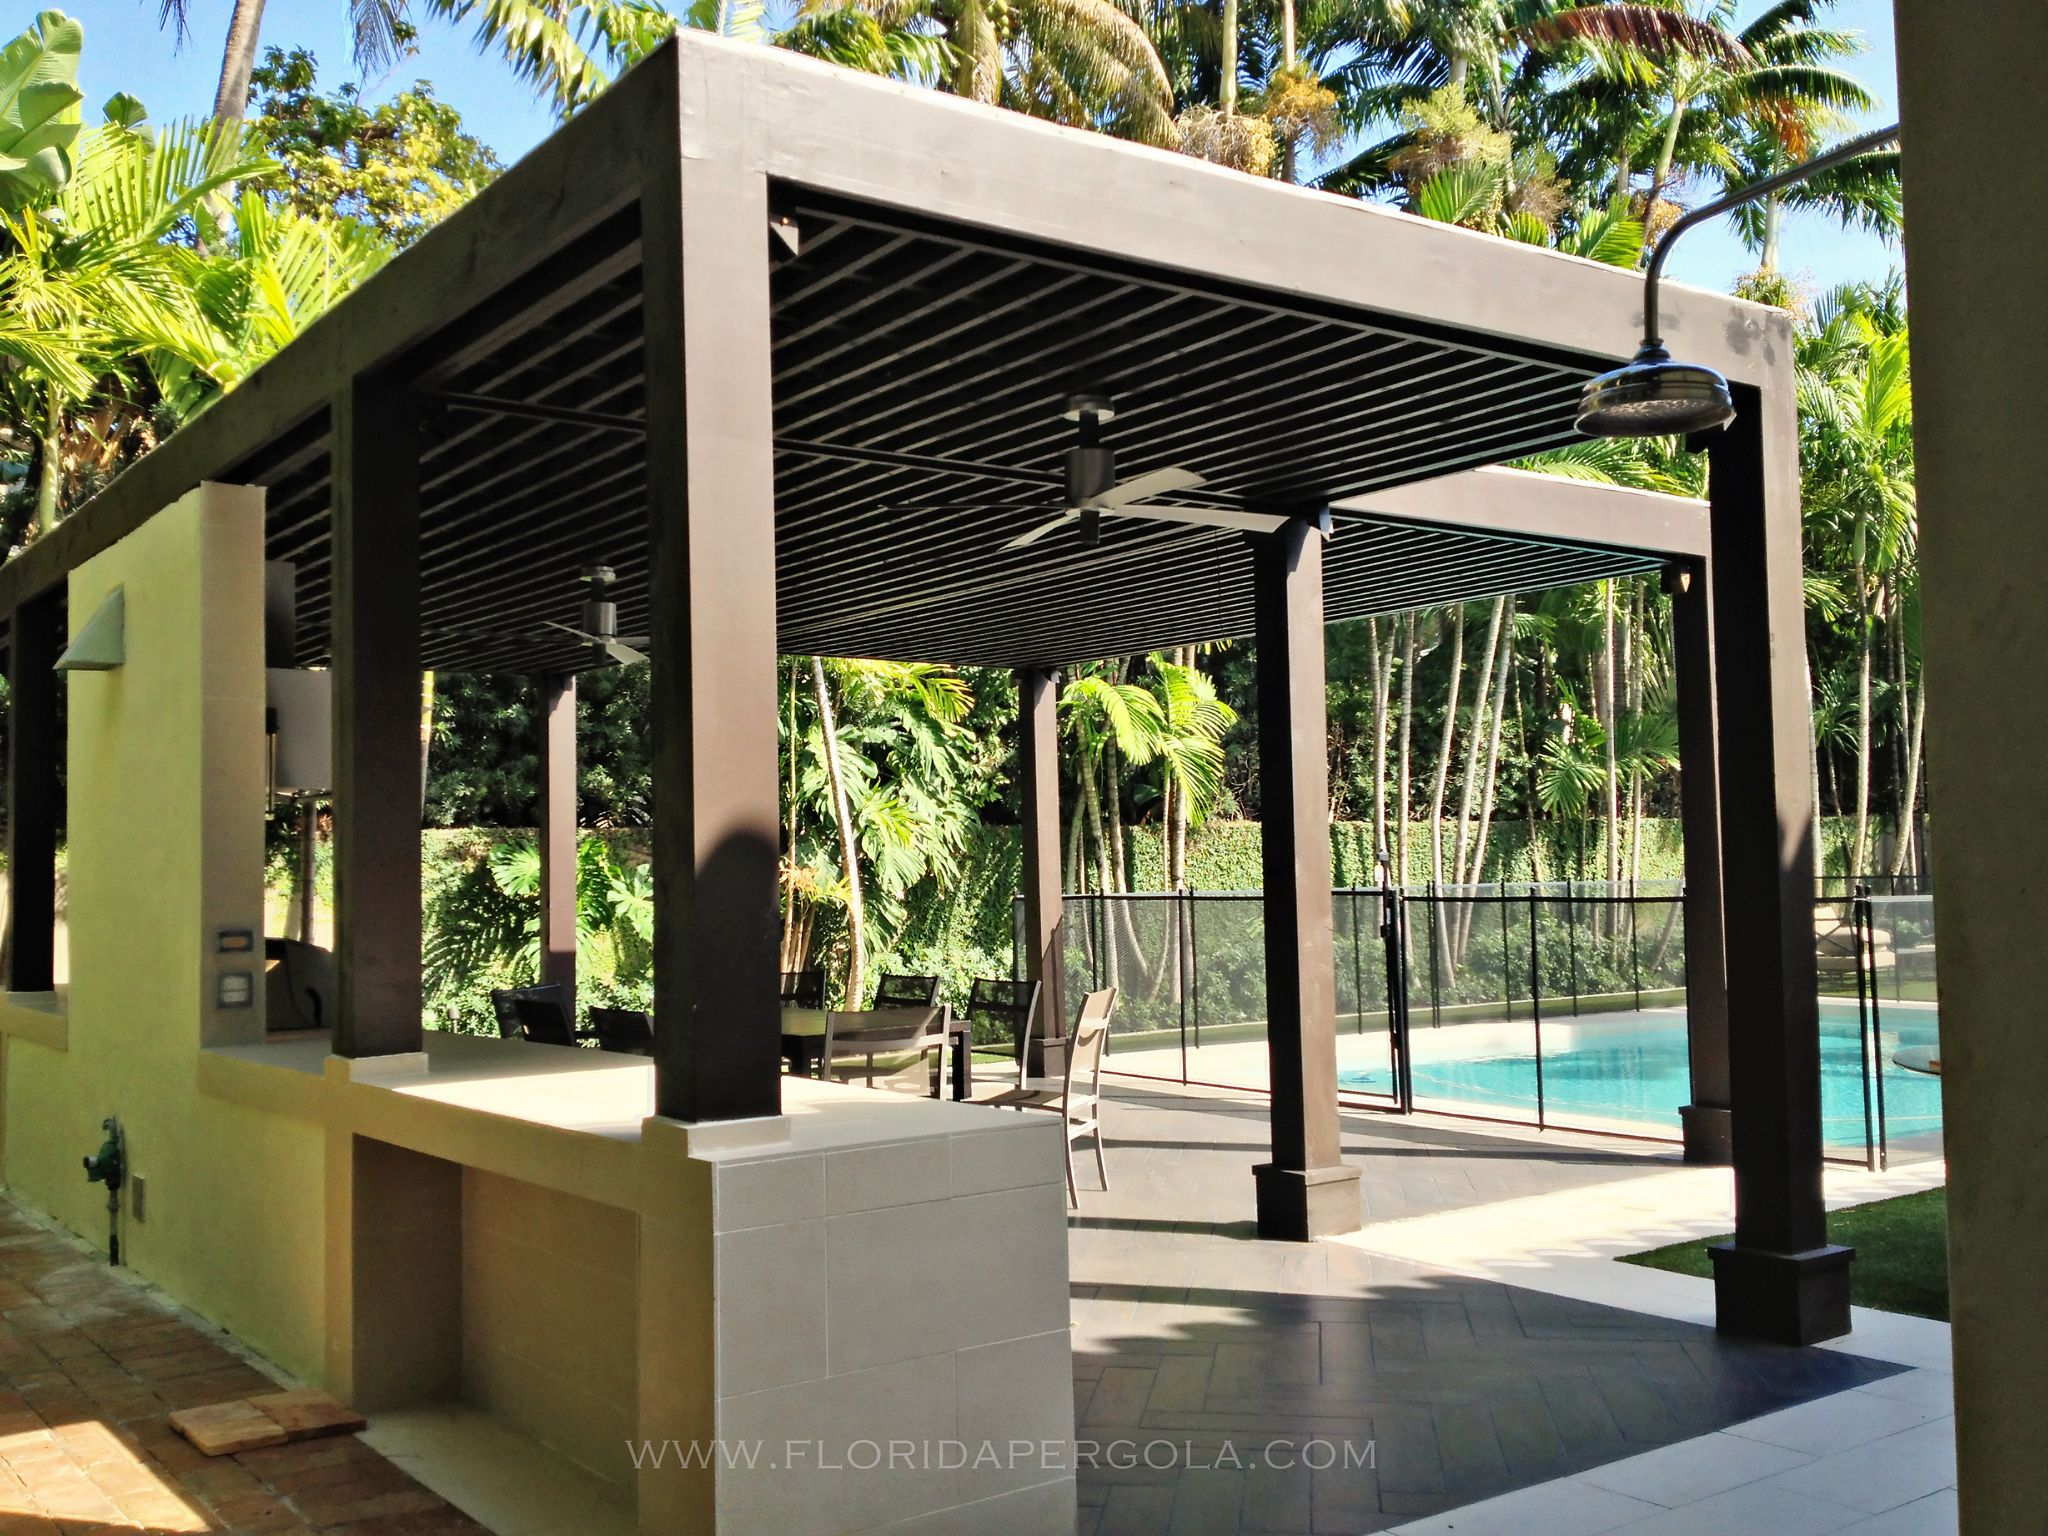 florida pergola specializing in landscape structures pergola pinterest modern pergola. Black Bedroom Furniture Sets. Home Design Ideas